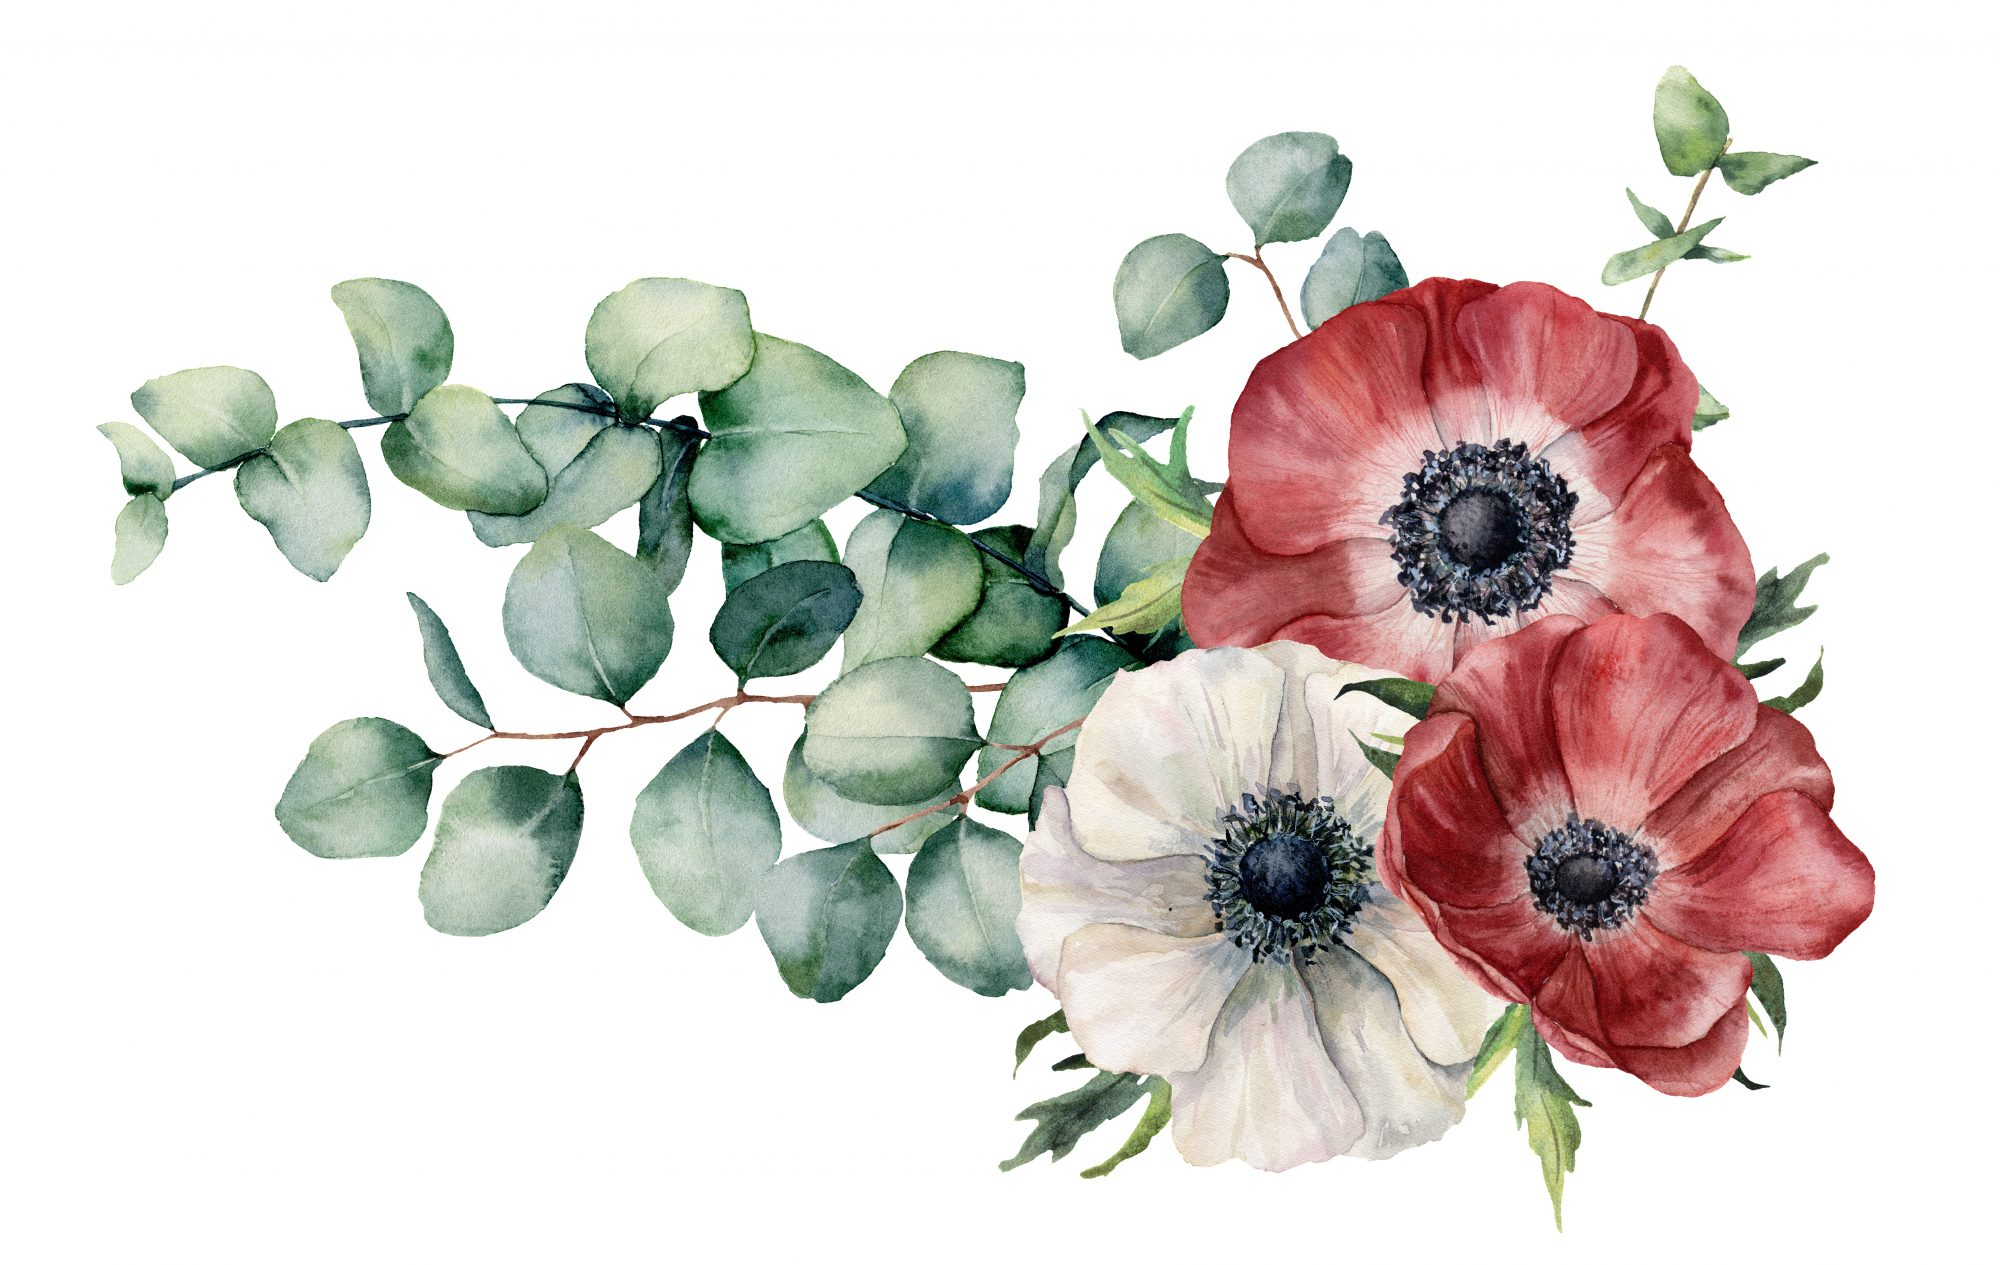 Ananomie Videos 10 facts about anemone flower all gardeners should know